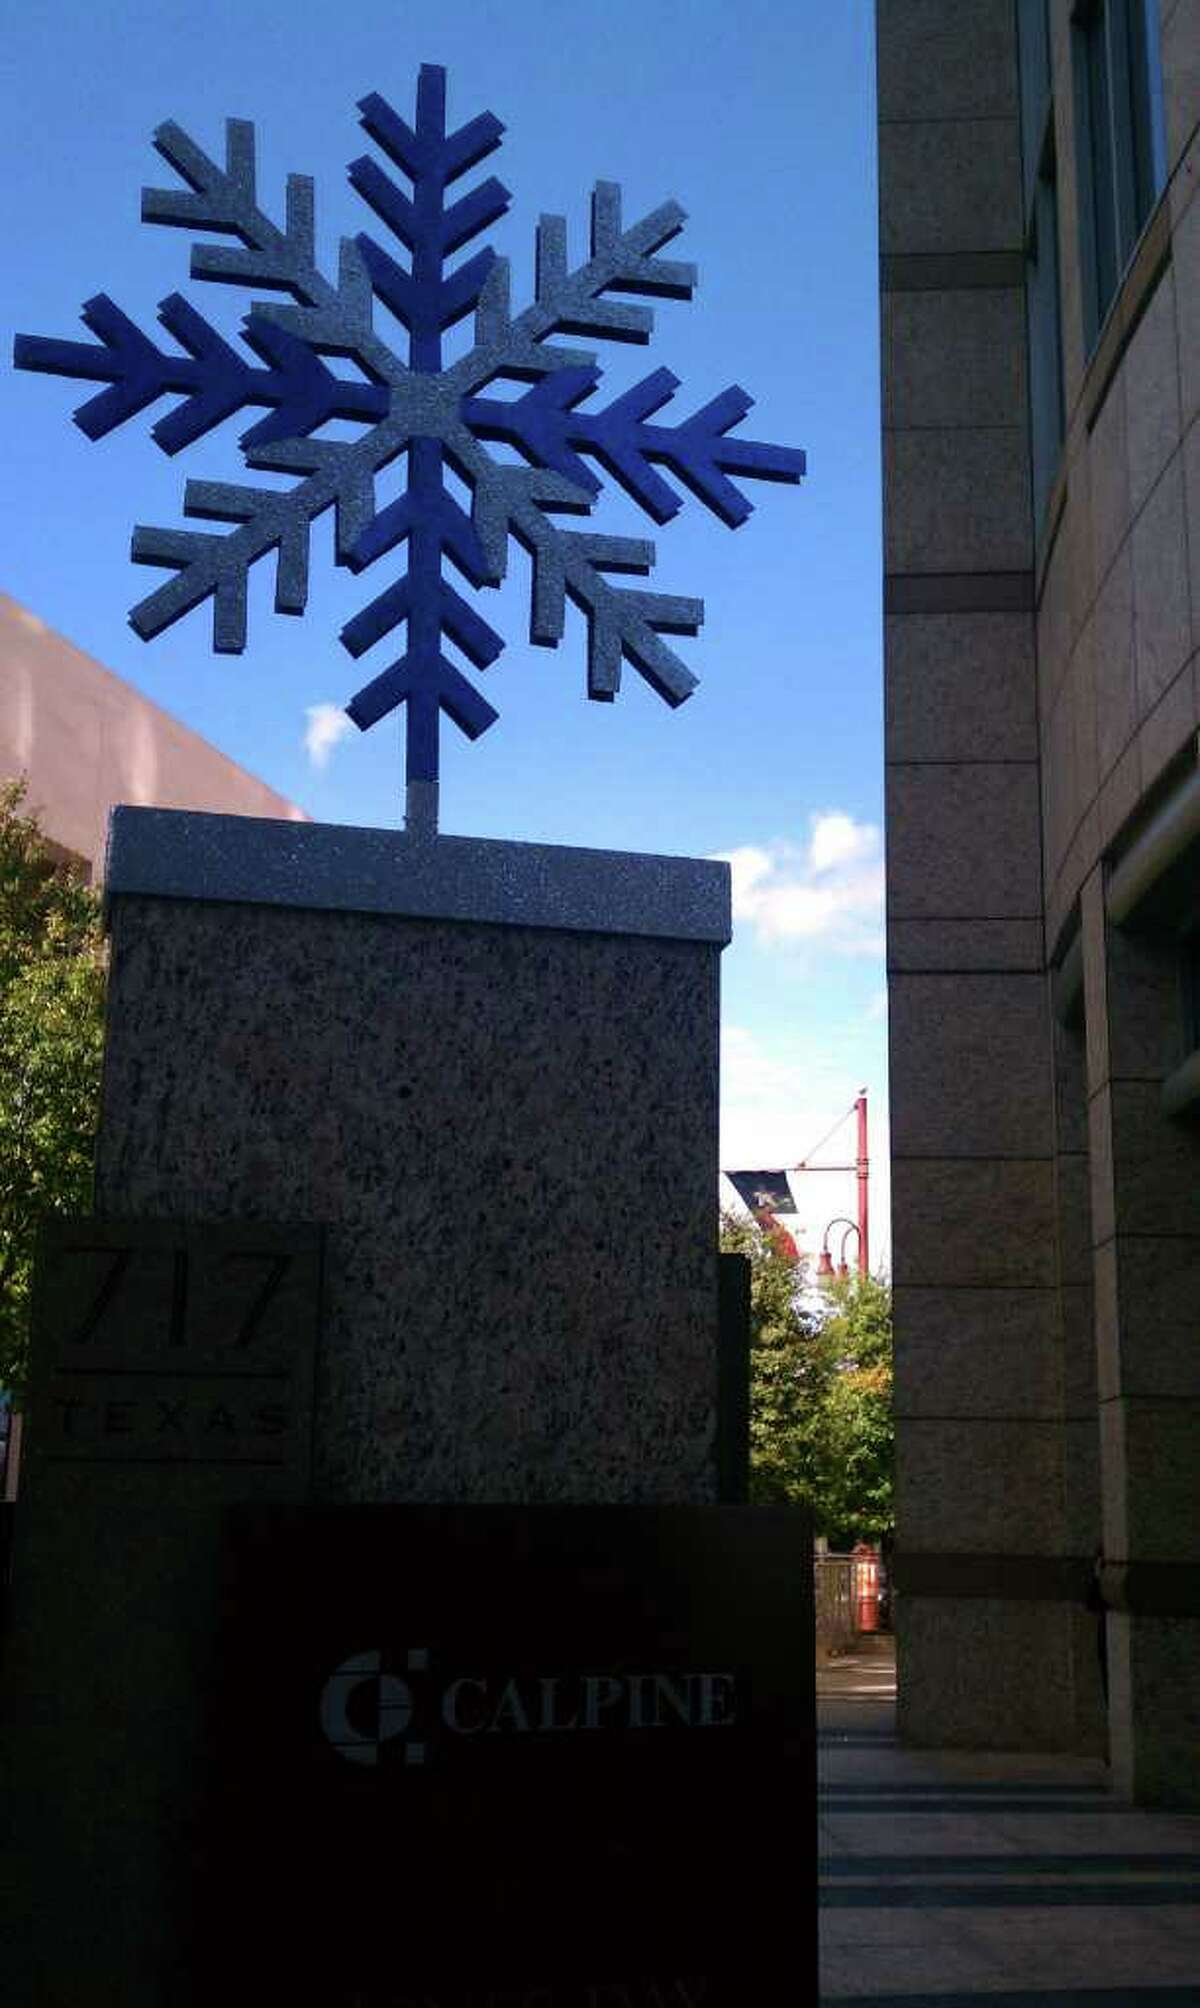 Katherine Feser : Chronicle RARE SNOW SIGHTING: A blue and silver flake decorates the monument outside 717 Texas in downtown Houston.